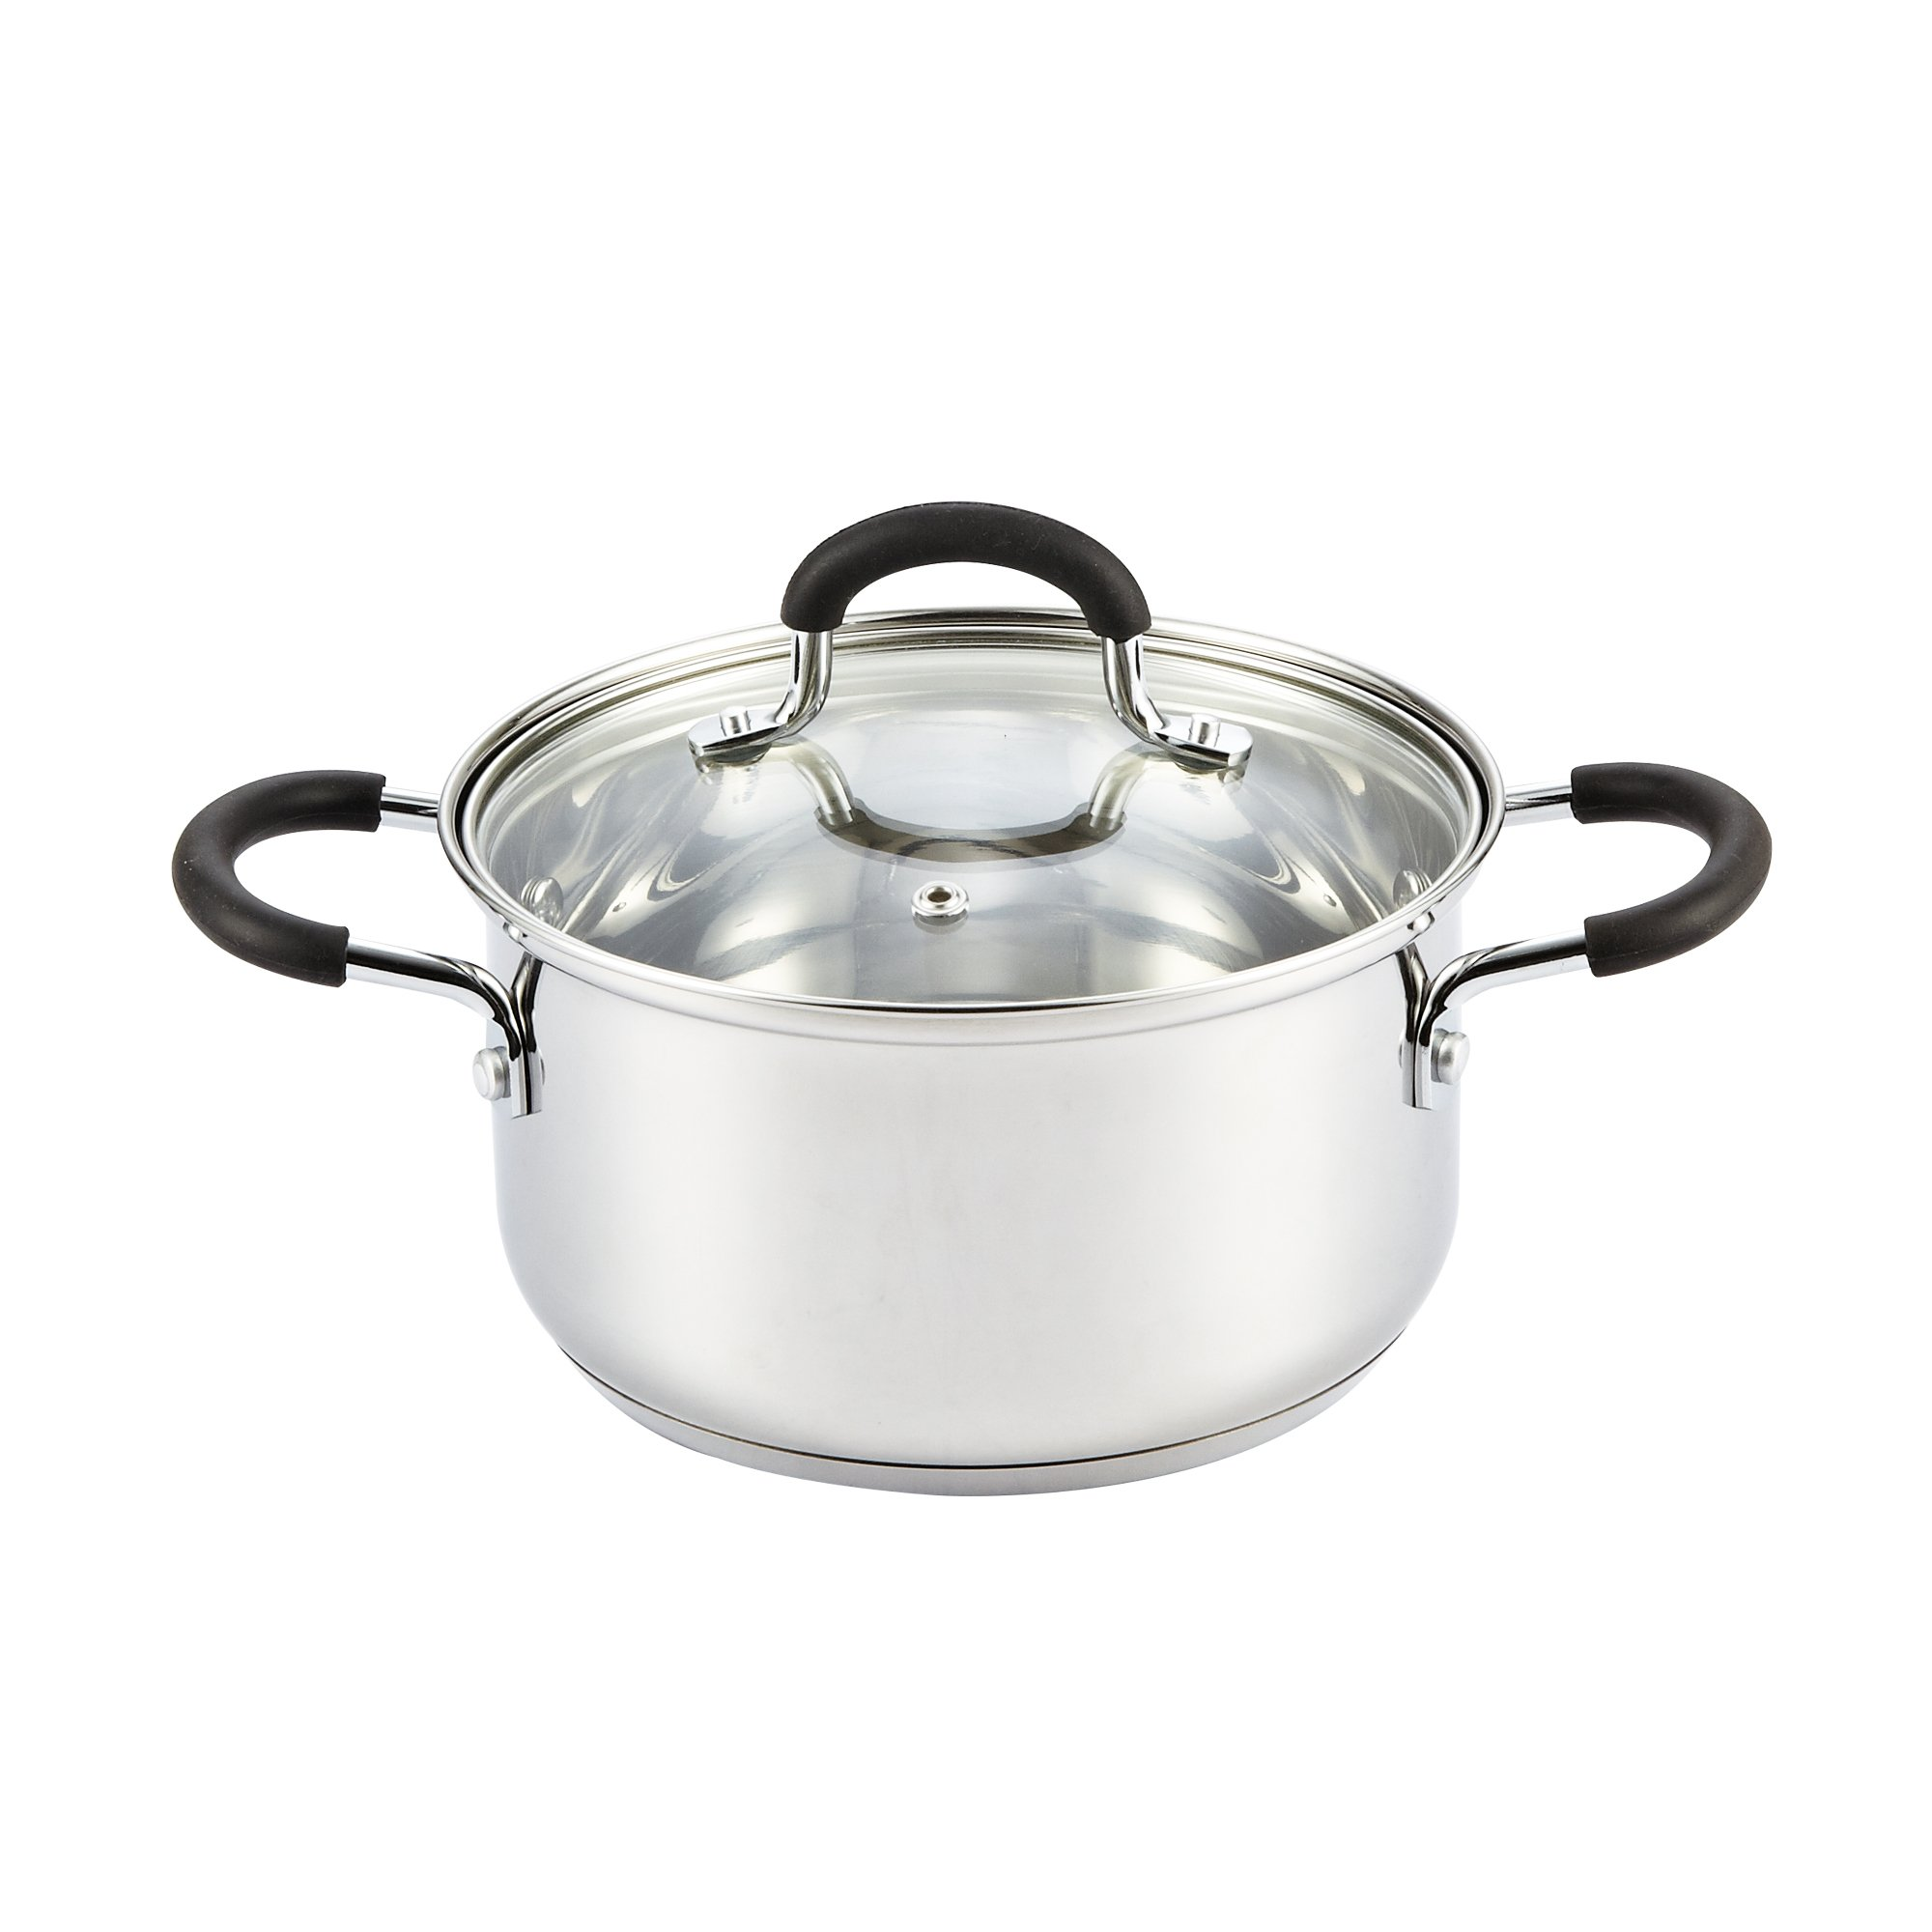 Cook N Home 3 Quart Stainless Steel Sauce Pot Casserole with Lid